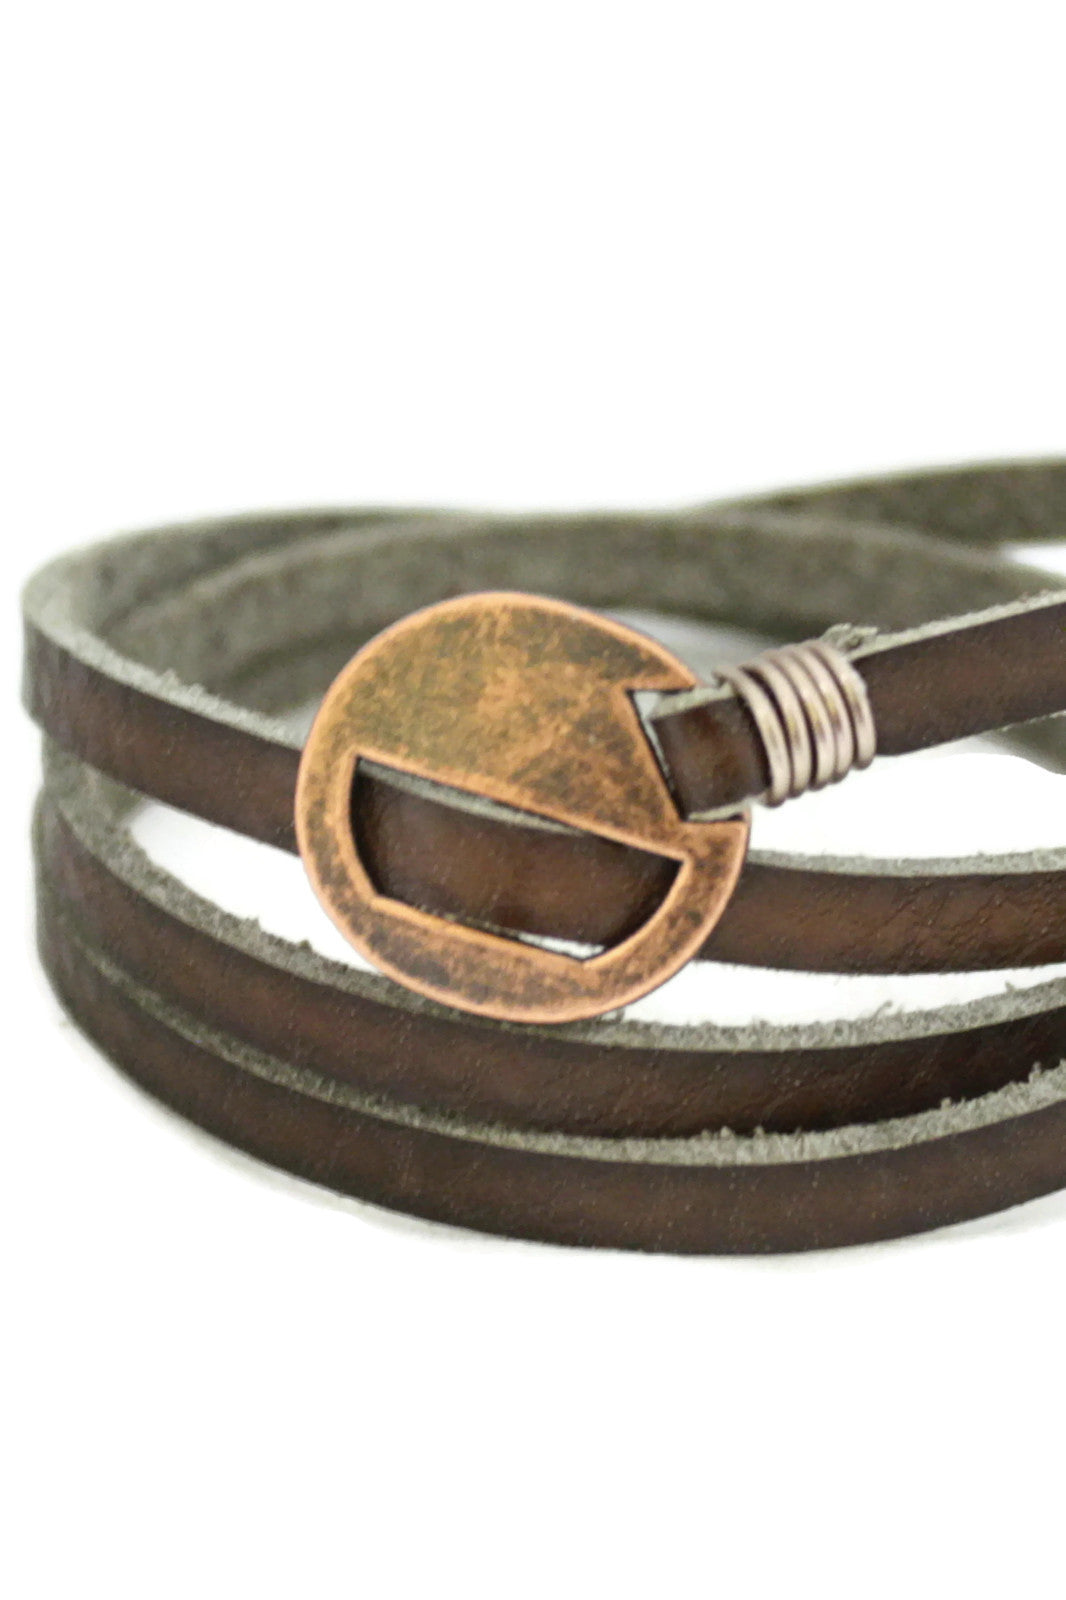 Wrapped Brown Leather Essential Oil Bracelet- Adjustable-Diffuser Bracelet-Destination Oils